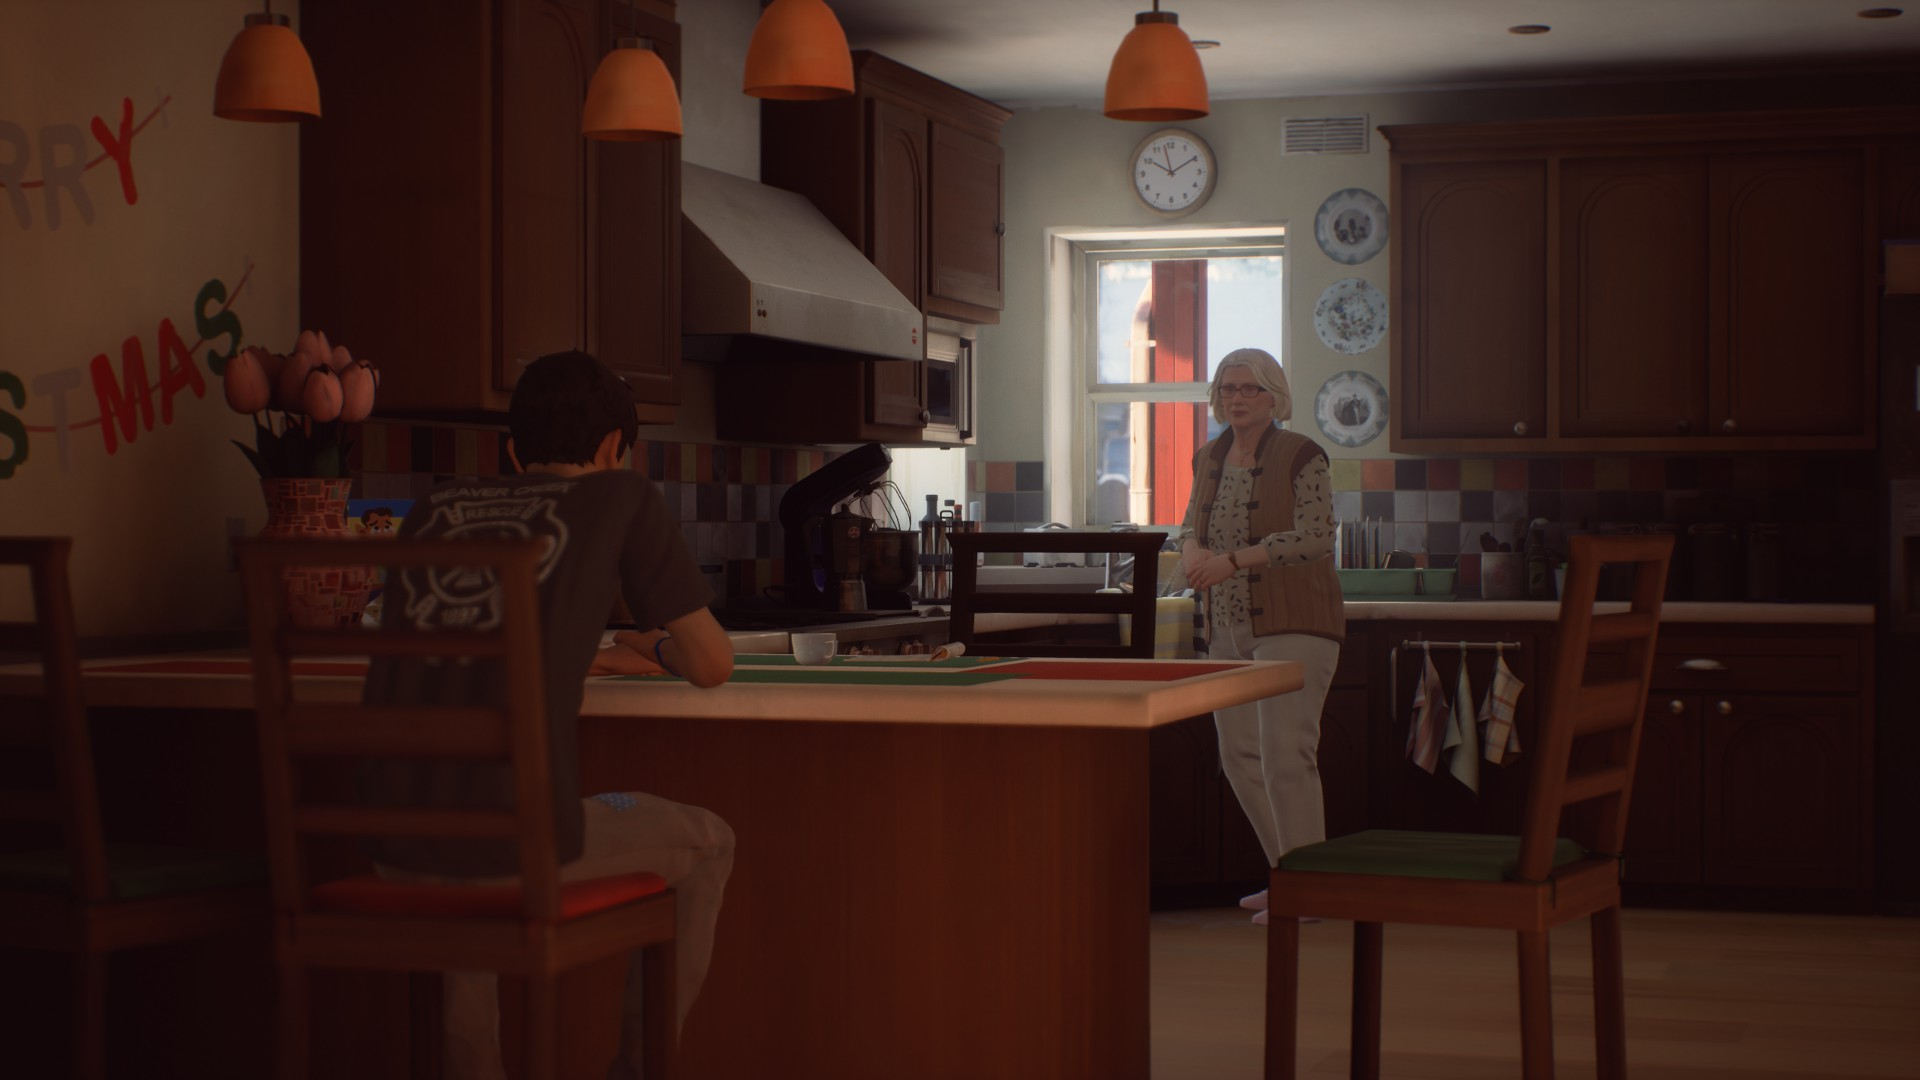 La maison des grands parents dans Life is Strange 2 épisode 2